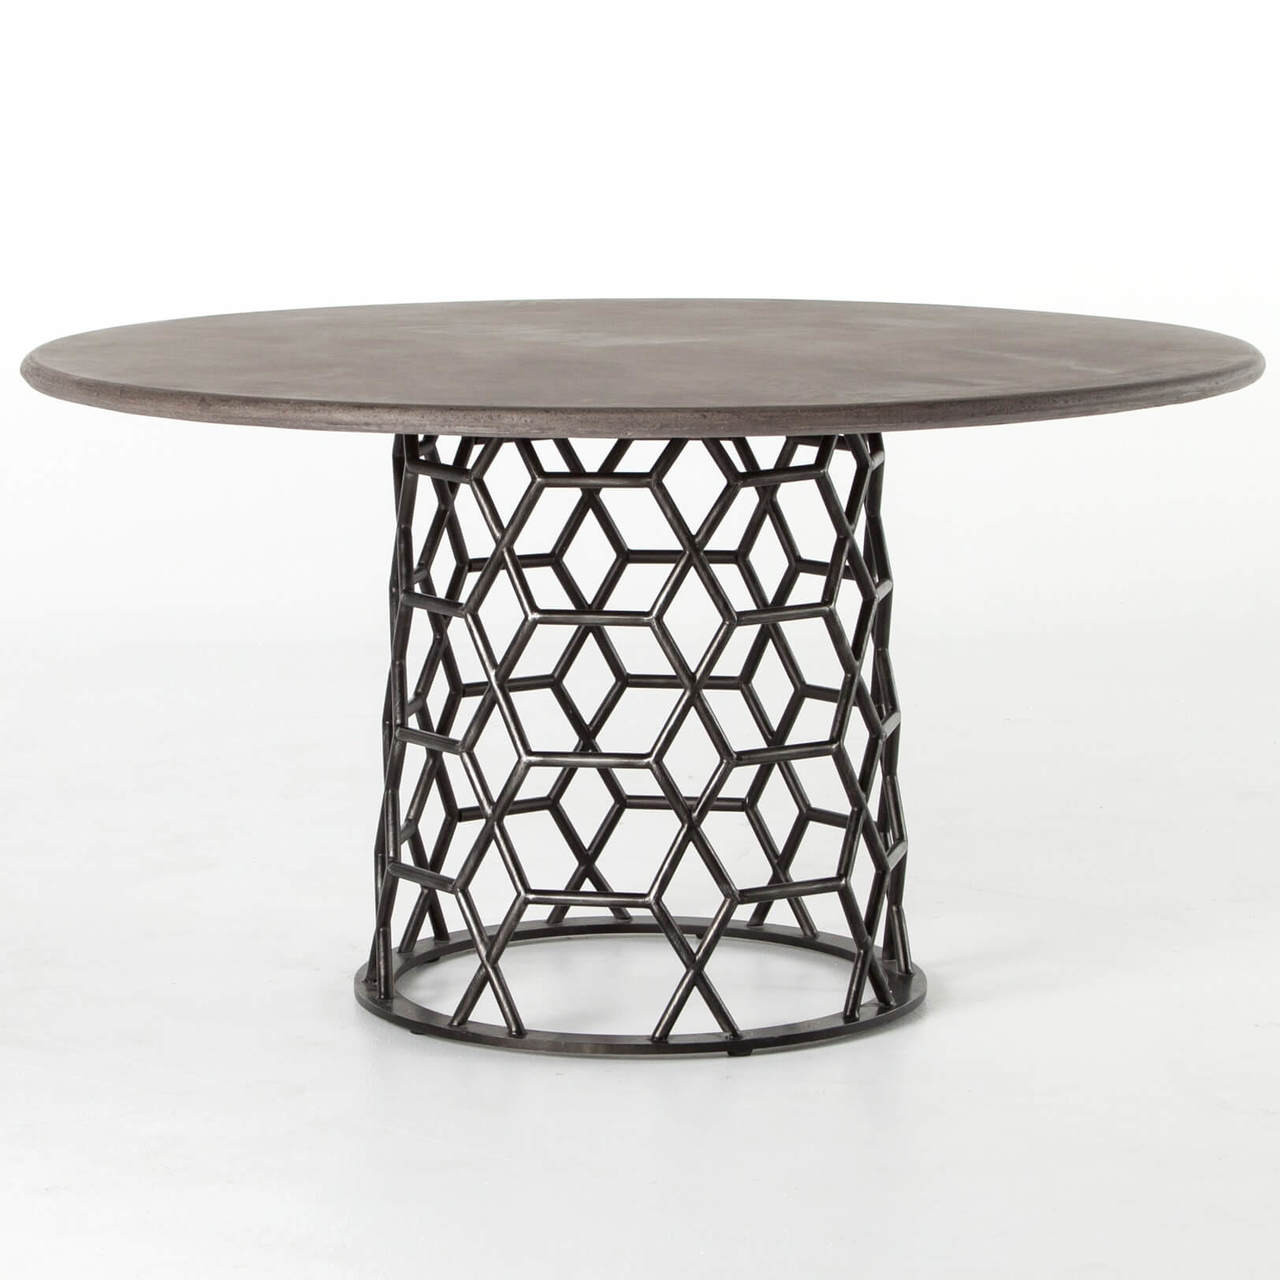 Arden Concrete Top Metal Pedestal Round Dining Table Zin Home - Concrete pedestal dining table